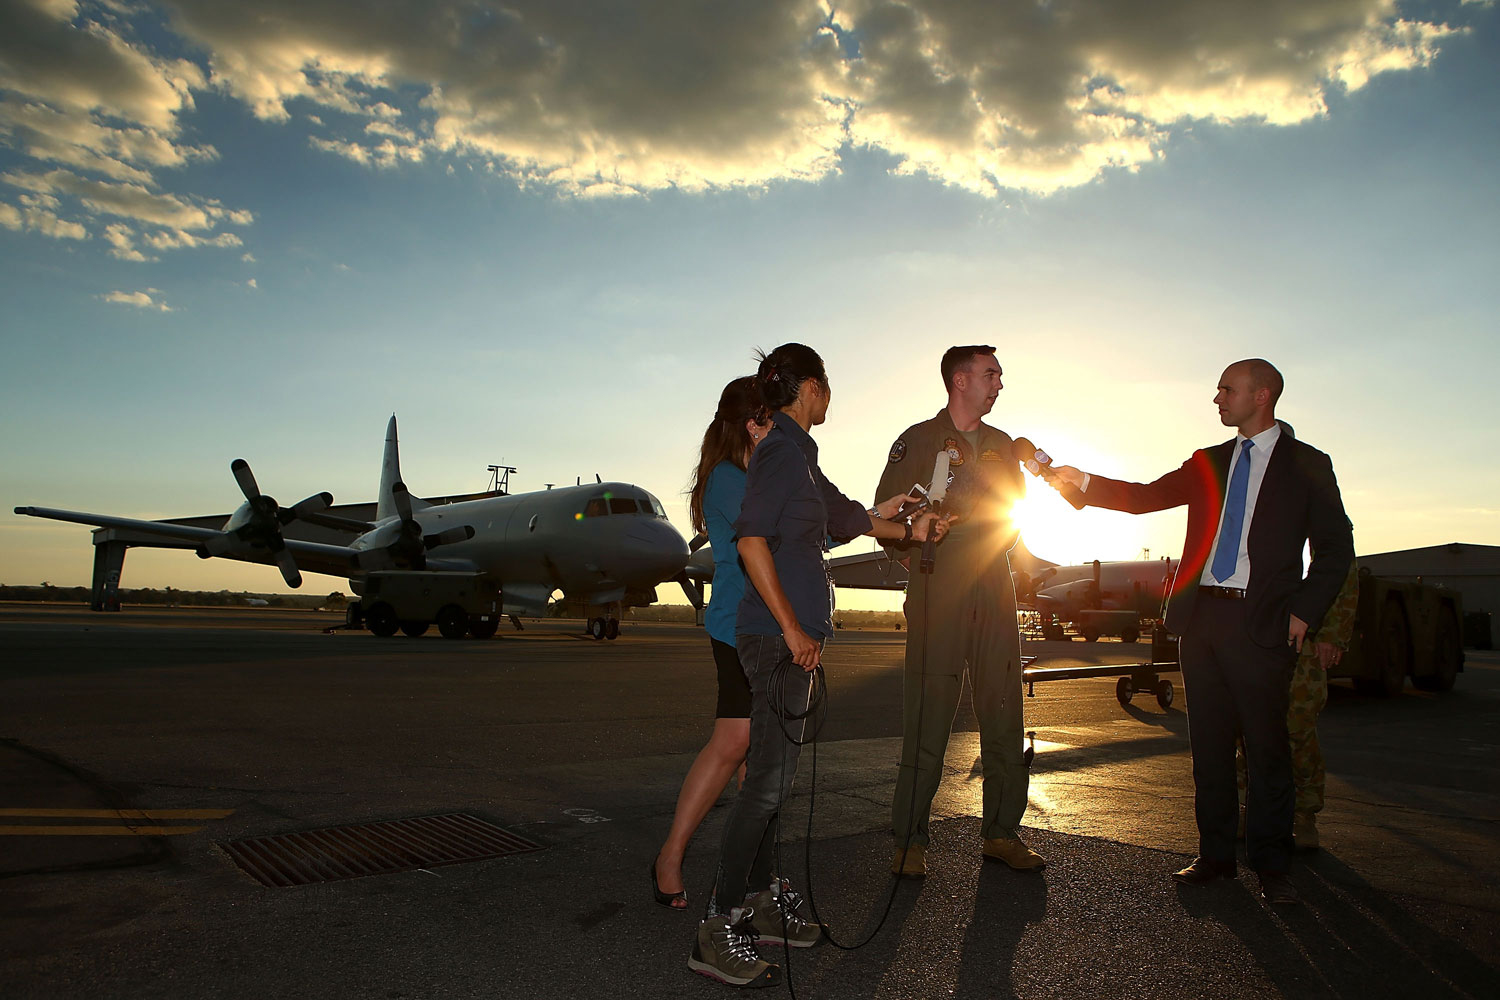 RAAF P3 Orion captain Flt Lt Benn Carroll speaks to reporters after returning from a search mission for debris from missing Malaysia Airlines flight MH370 at RAAF Base Pearce on April 8, 2014 in Perth, Australia.